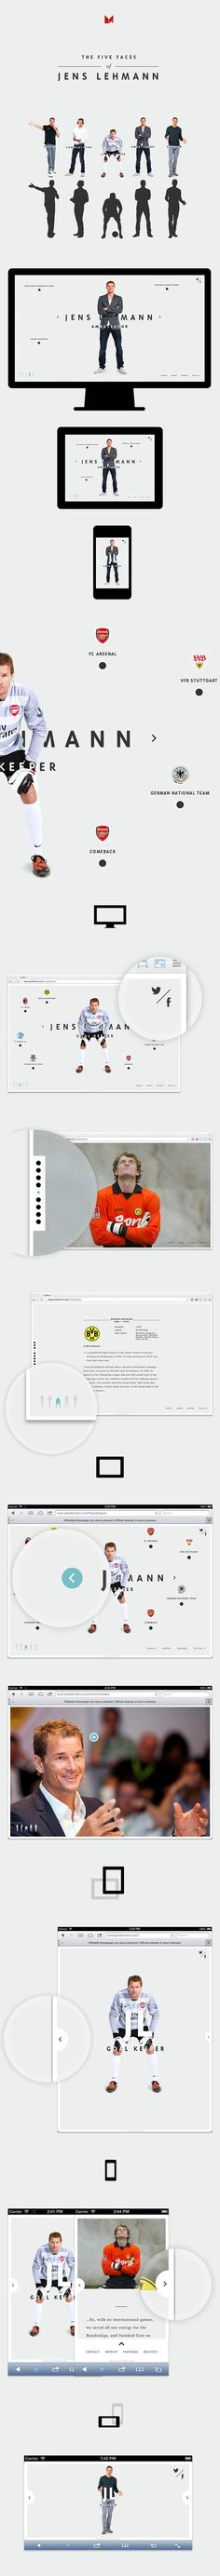 Jens Lehmann Personal Website on Behance #website #web #football #sebsite